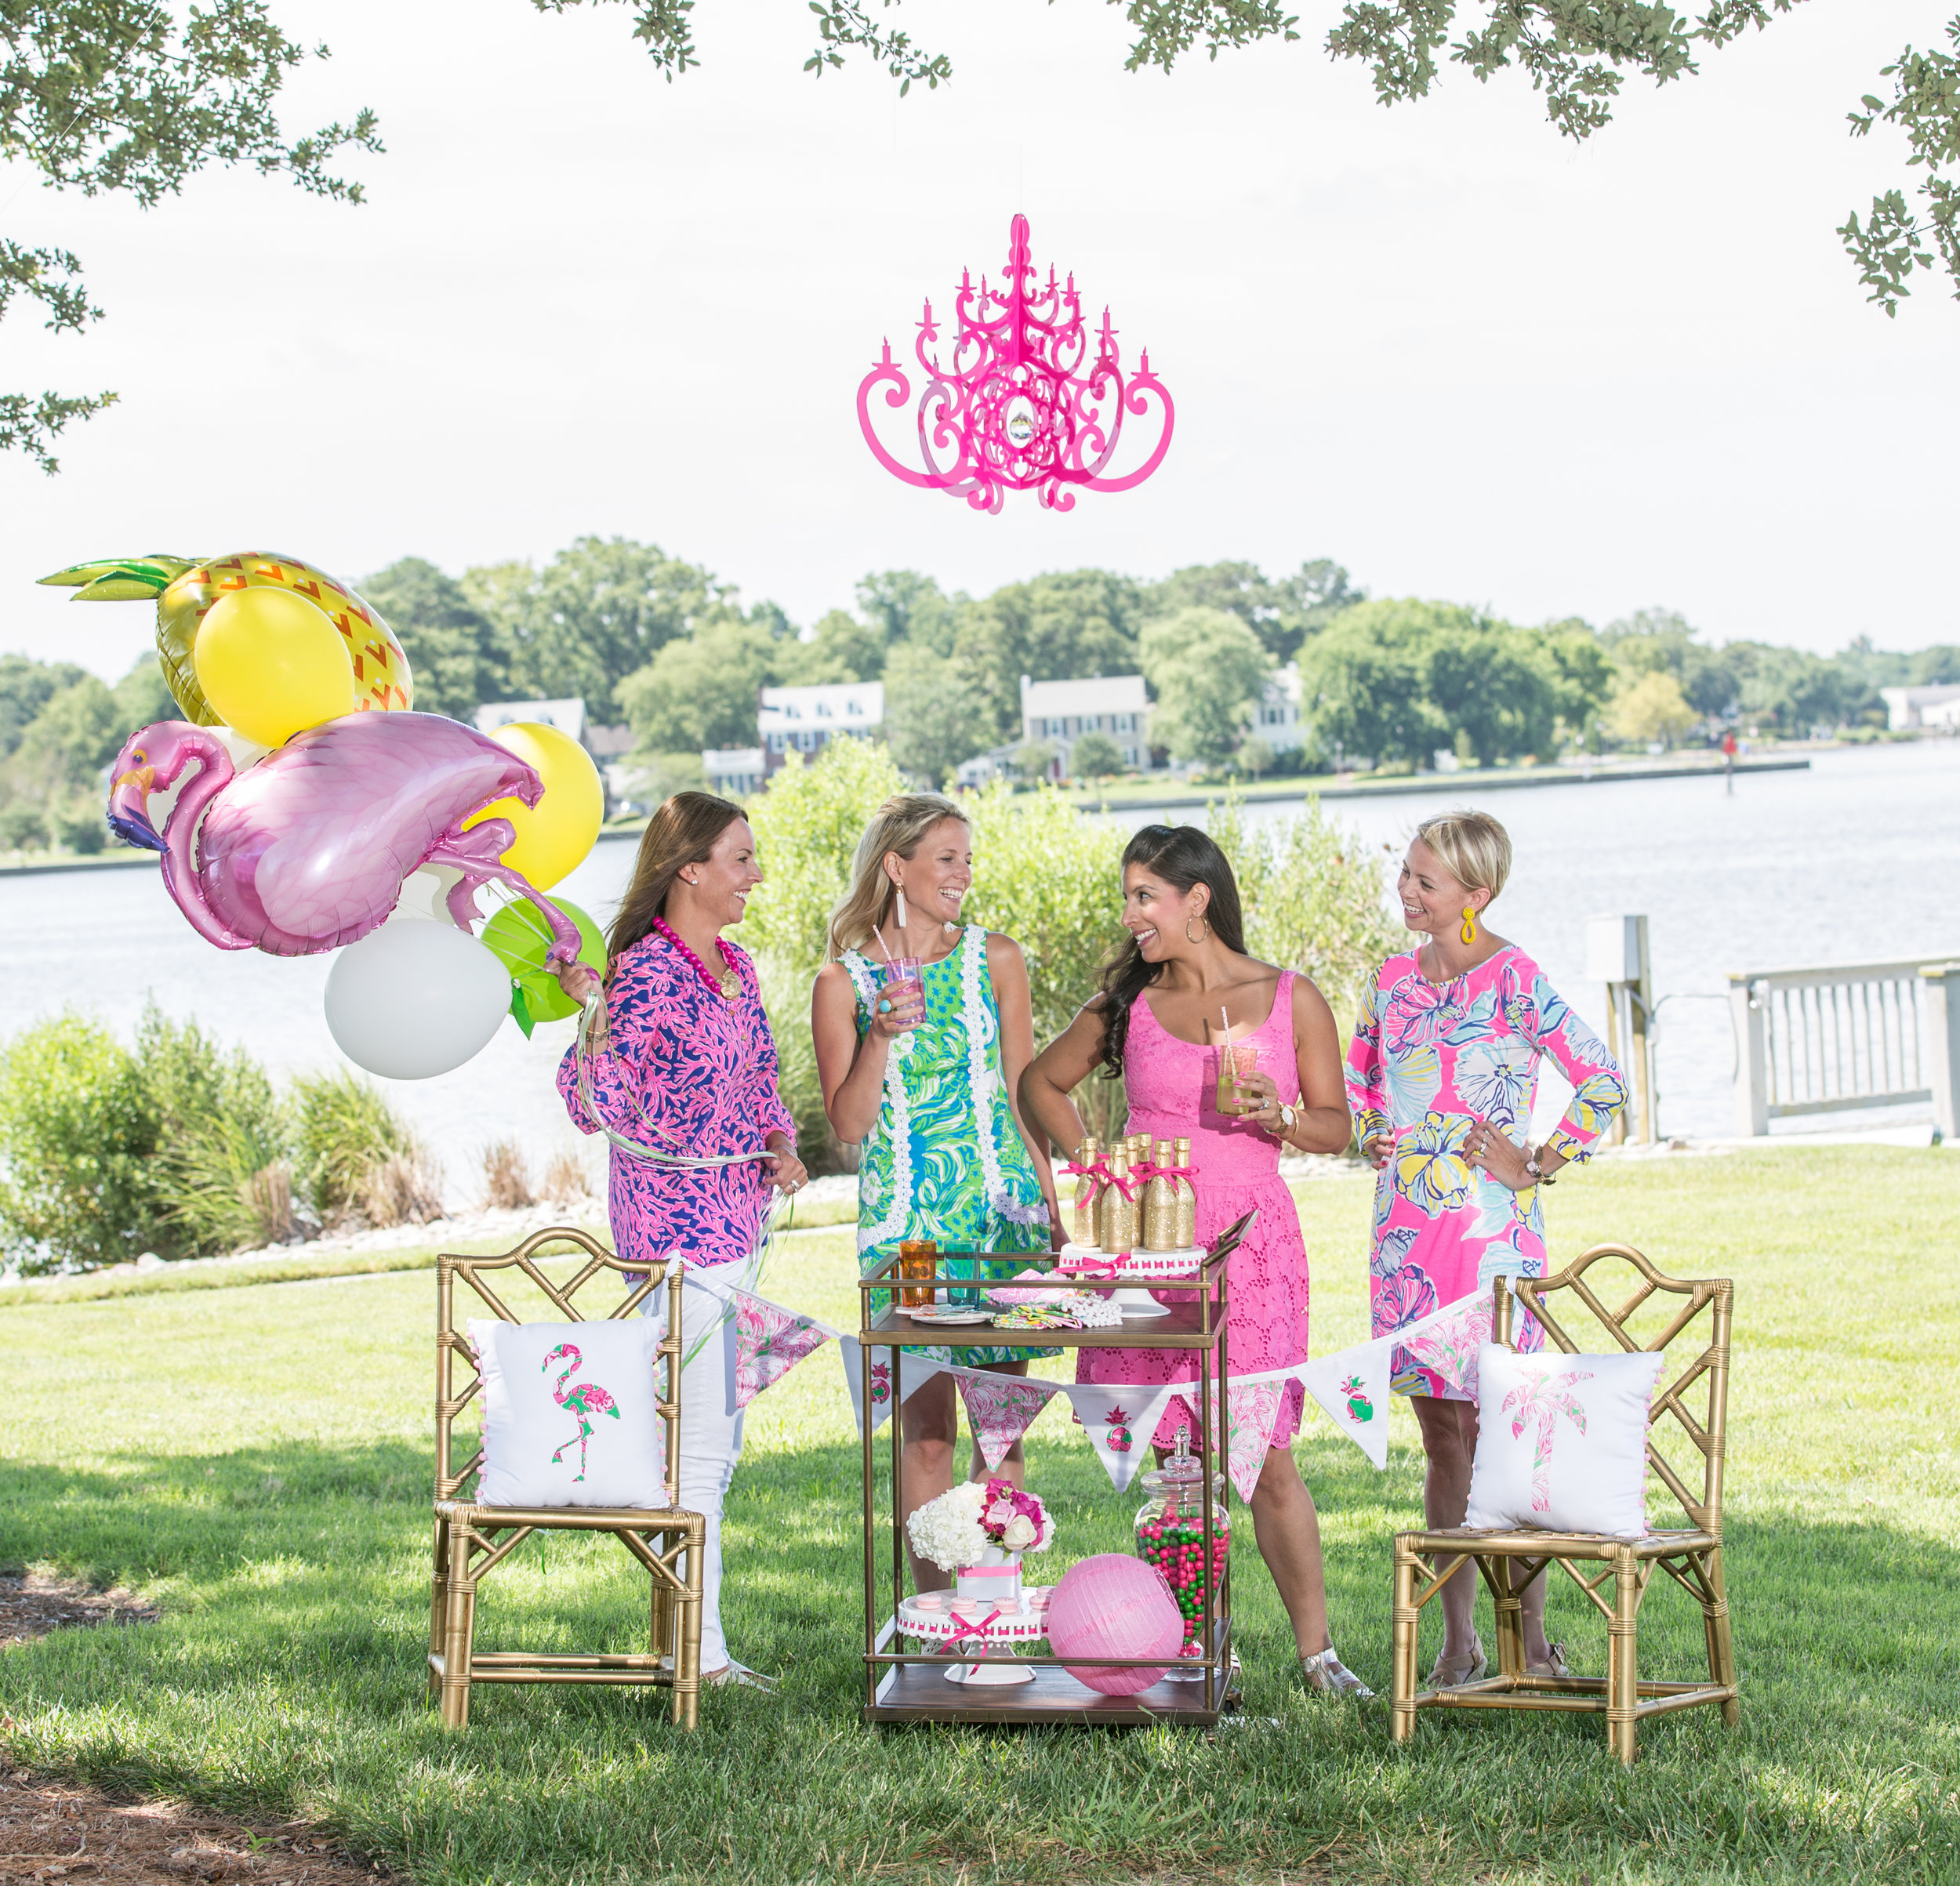 Pink flamingo balloons, pink dresses, pink shirts, pink candy, pink chandelier.